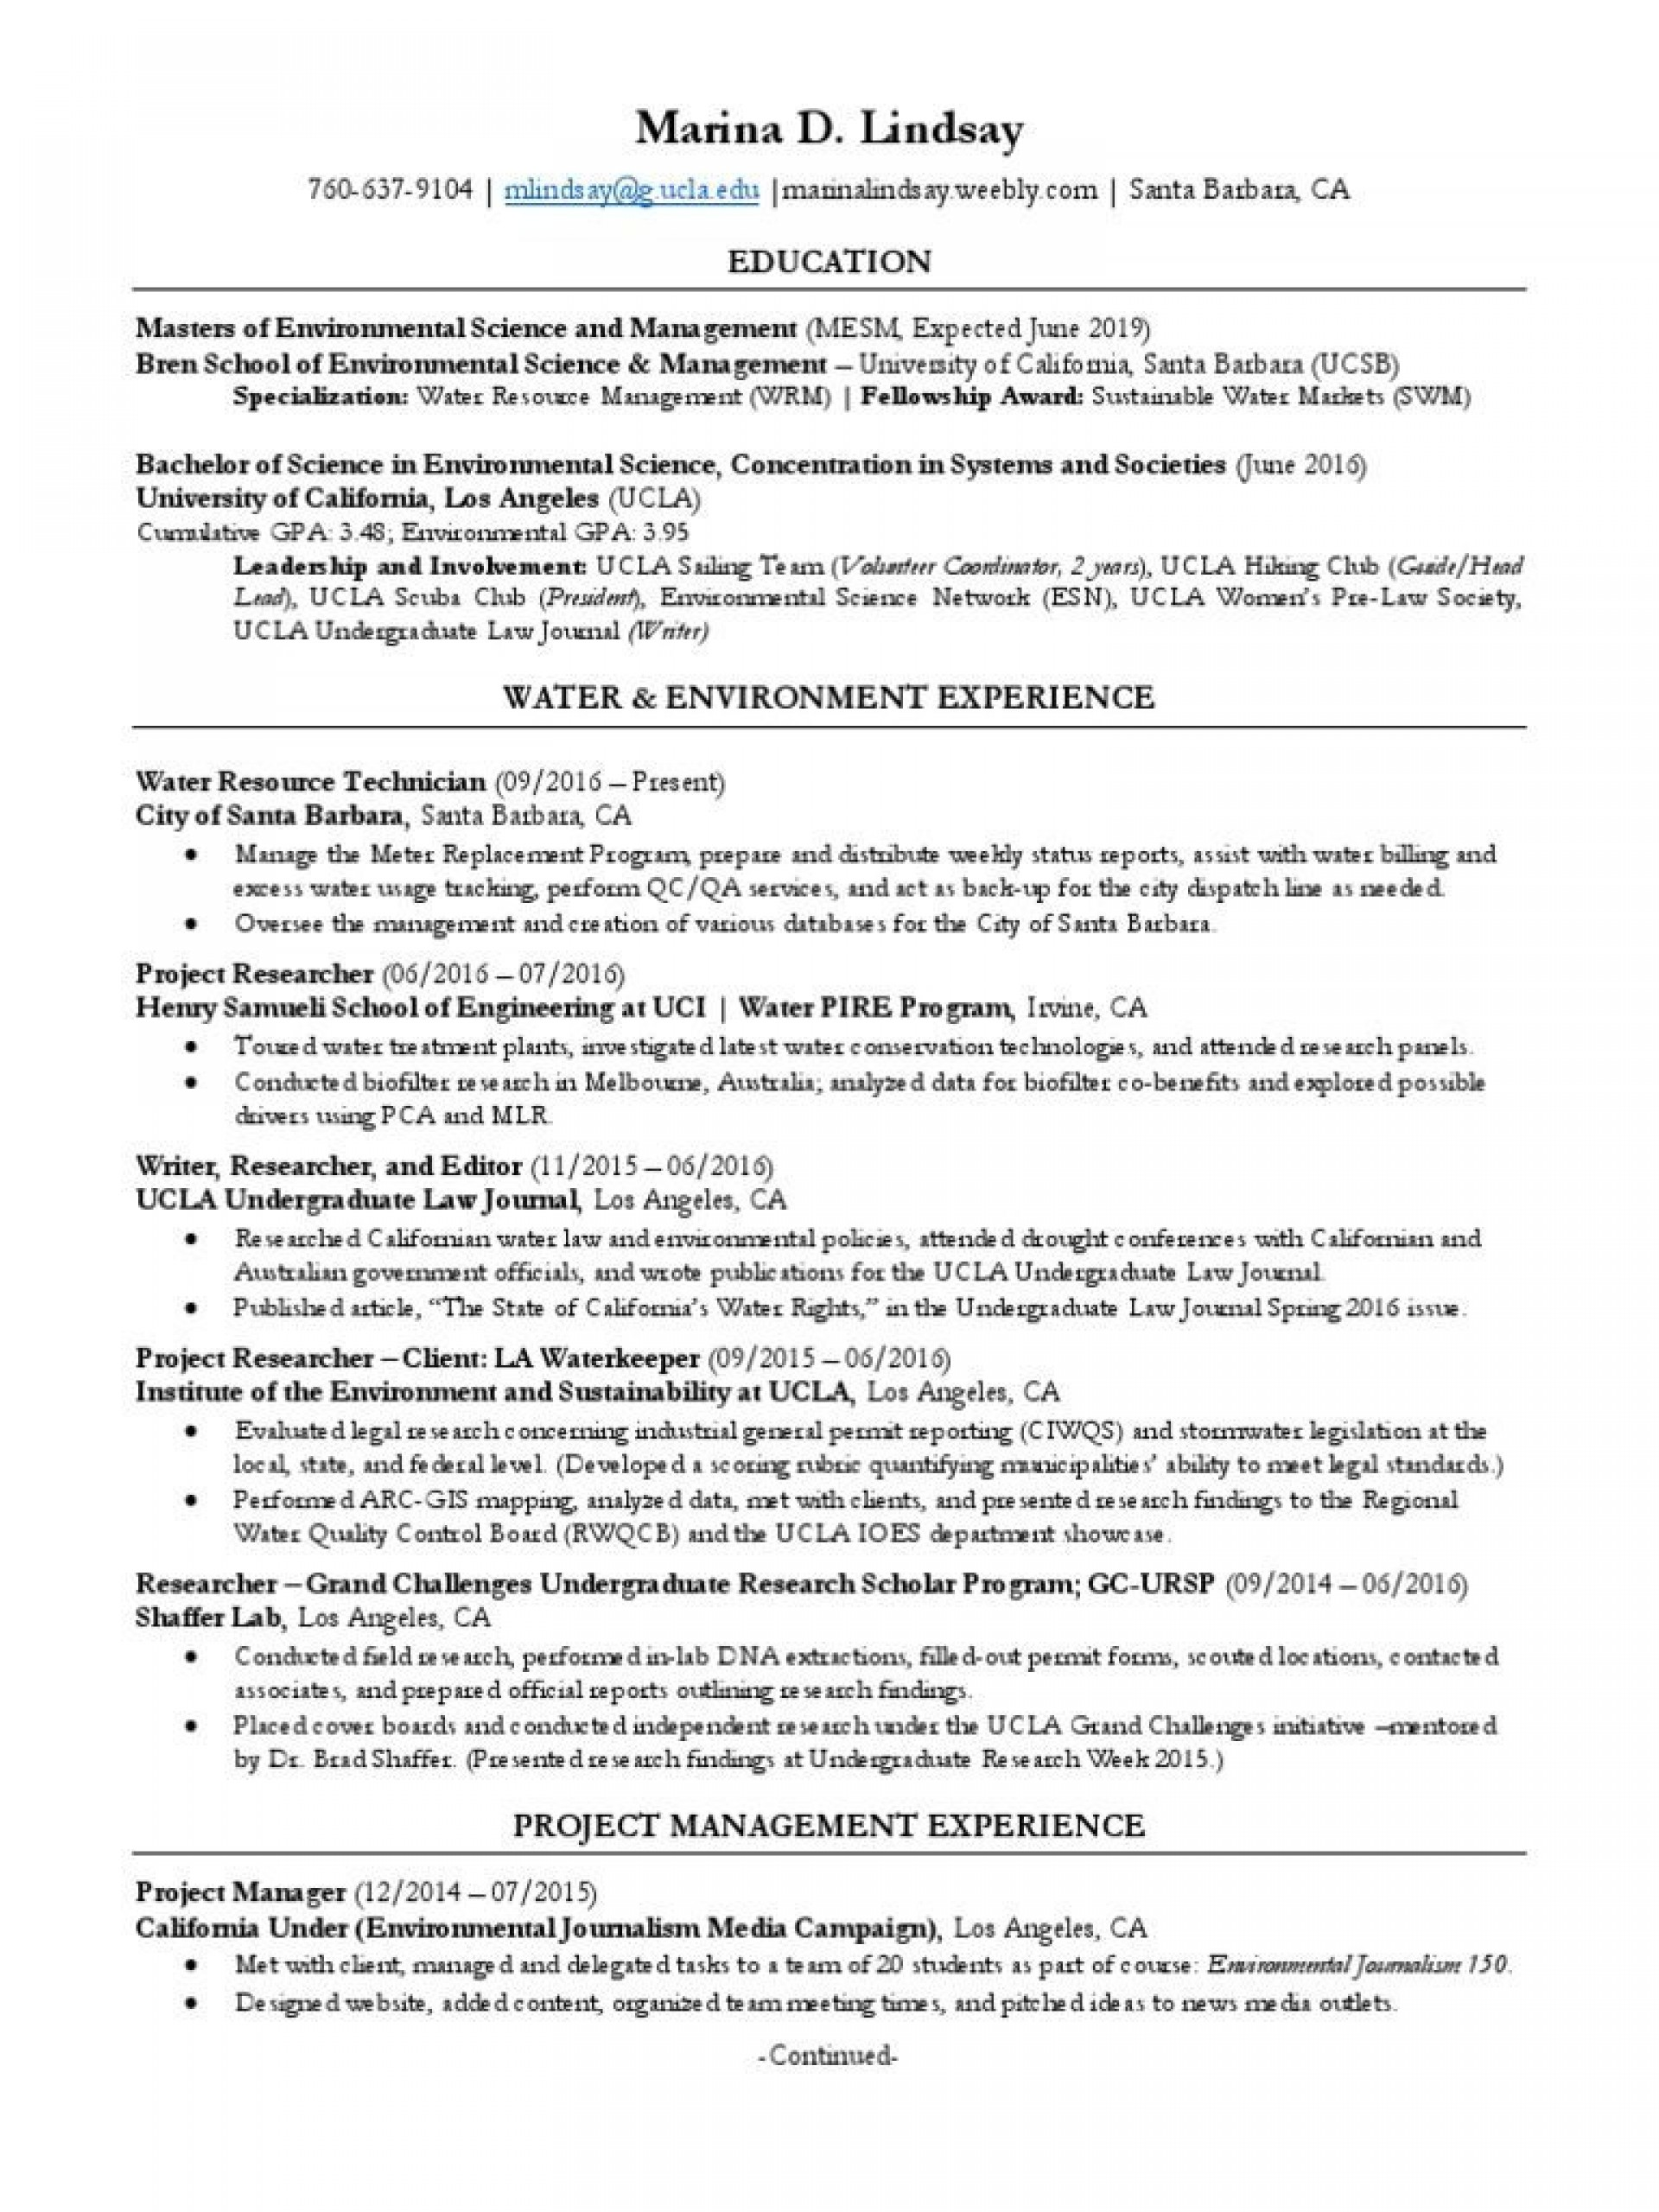 024 Apply Texas Essay Topics Picture Gallery For Website 768x1024 Archaicawful Prompt C Example Topic Examples A 1920